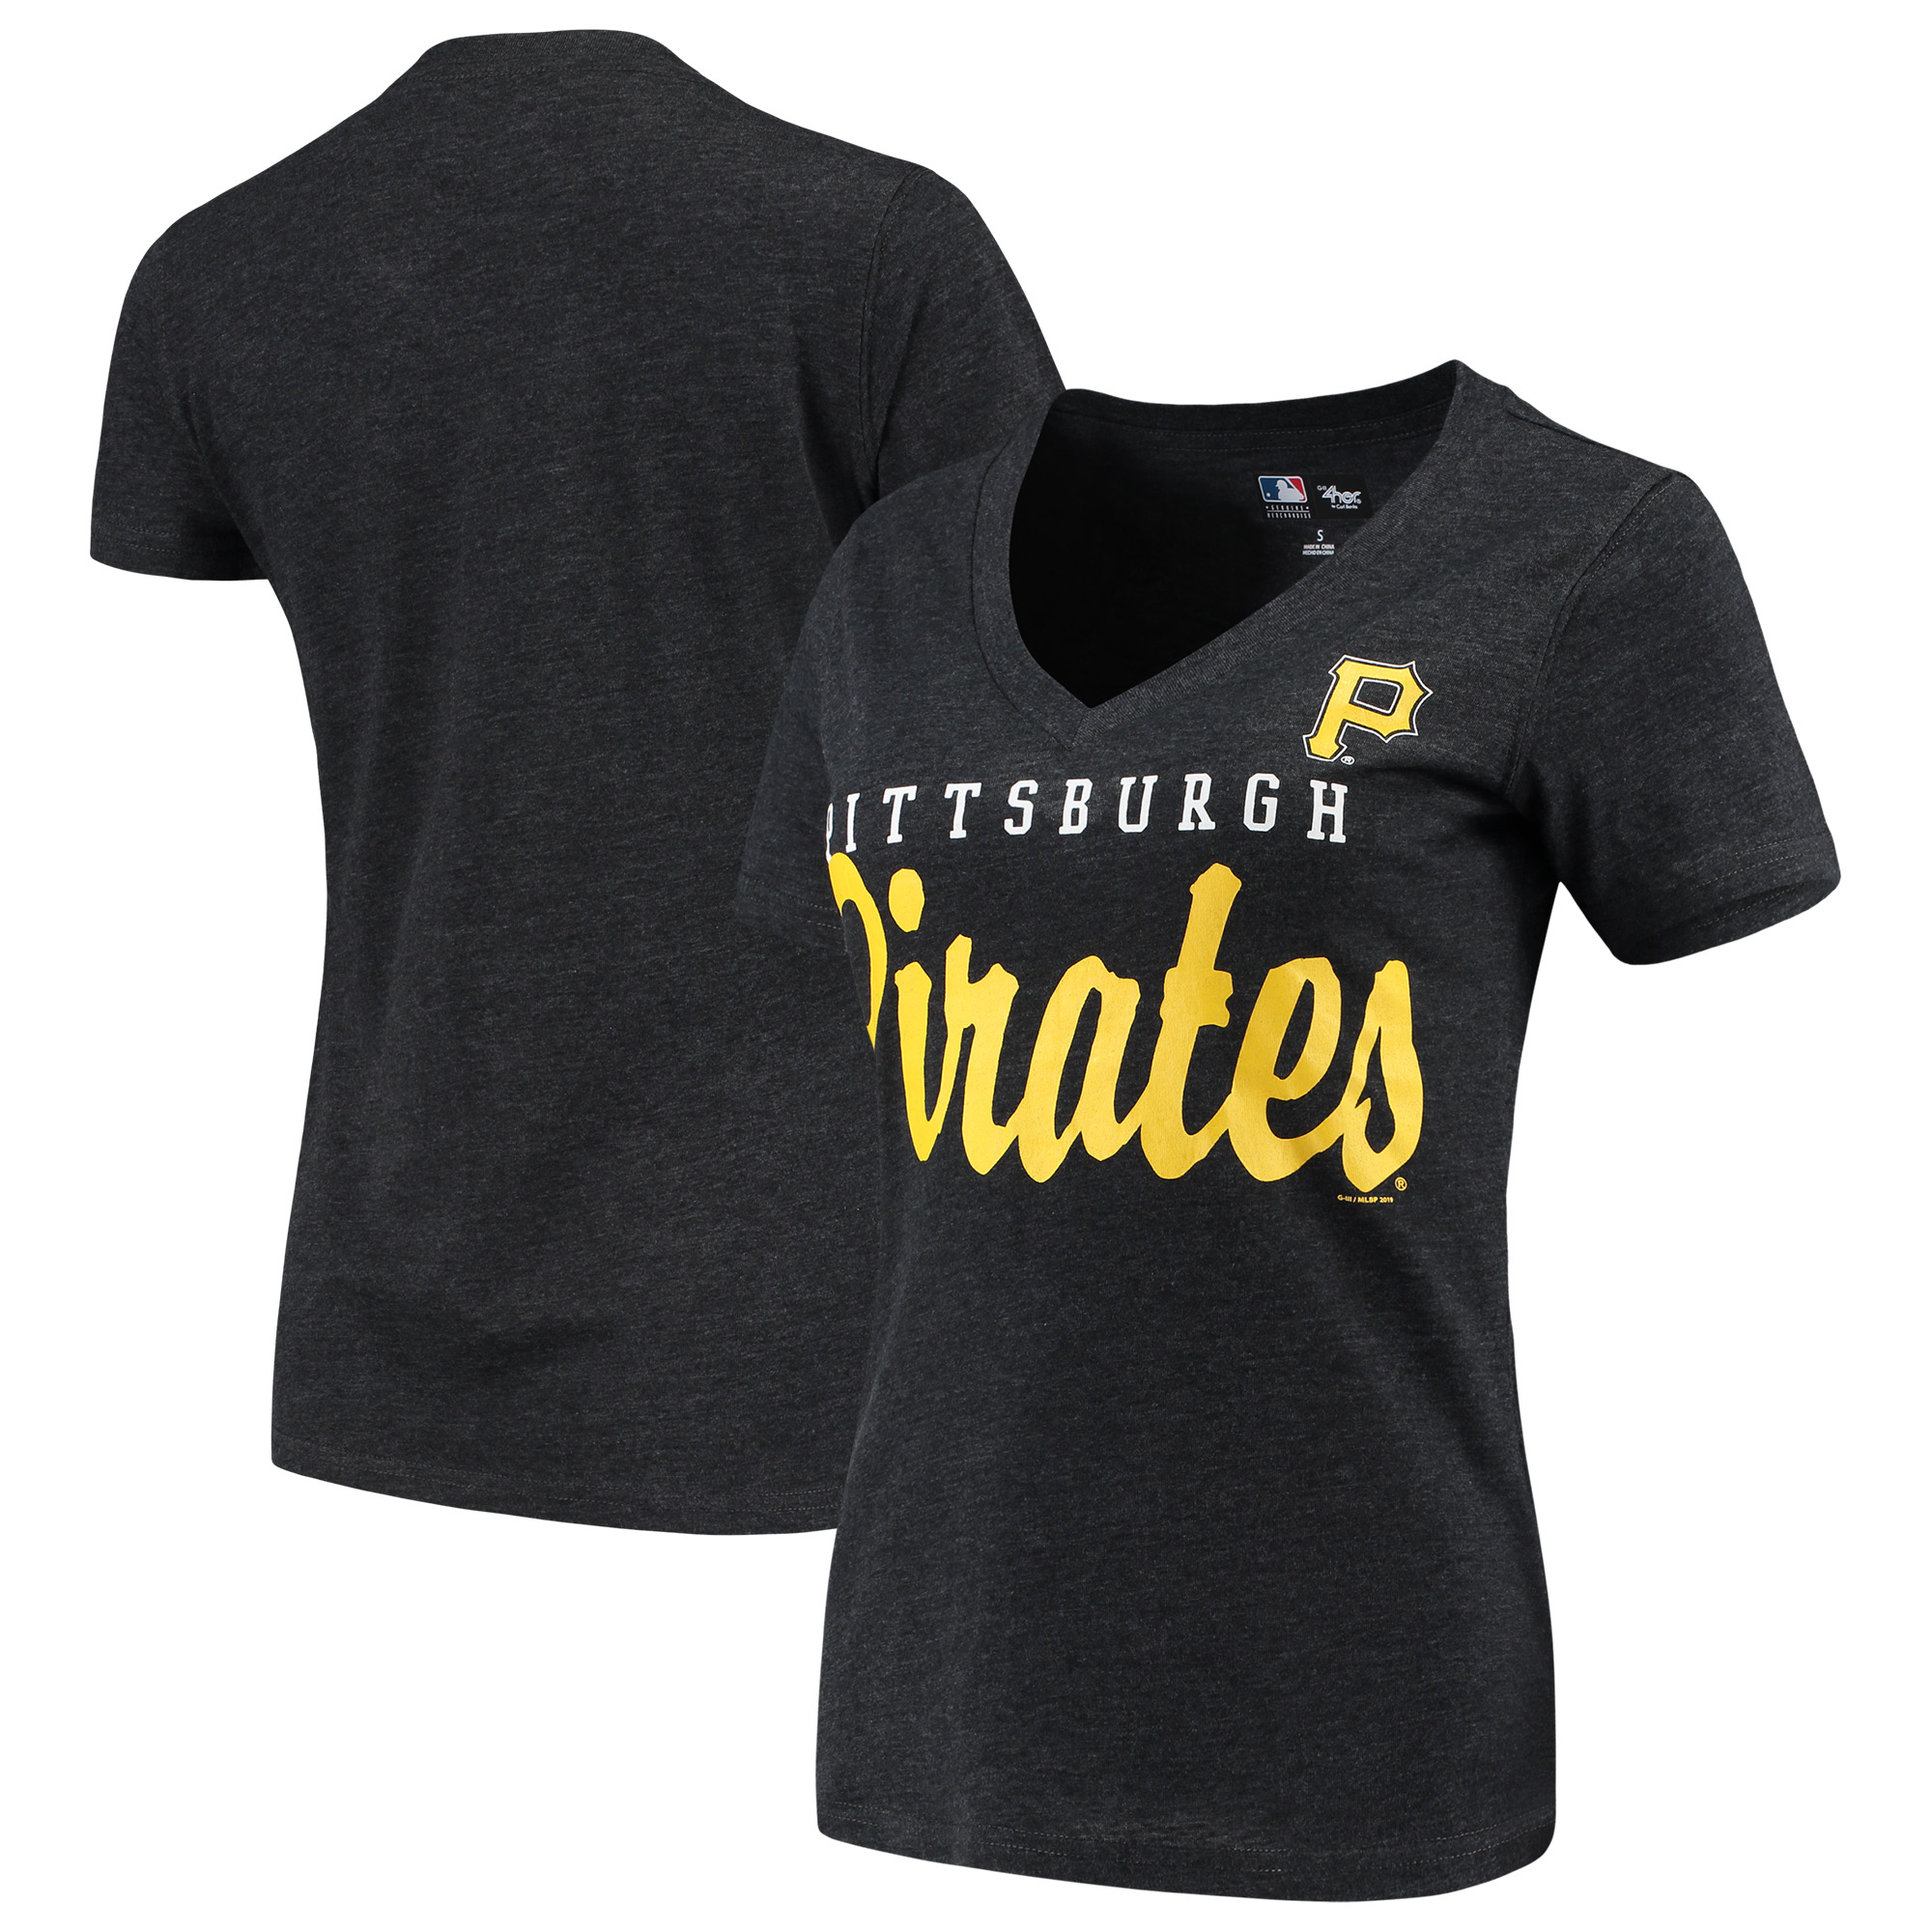 Pittsburgh Pirates G-III 4Her by Carl Banks Women's Game Day V-Neck T-Shirt - Black